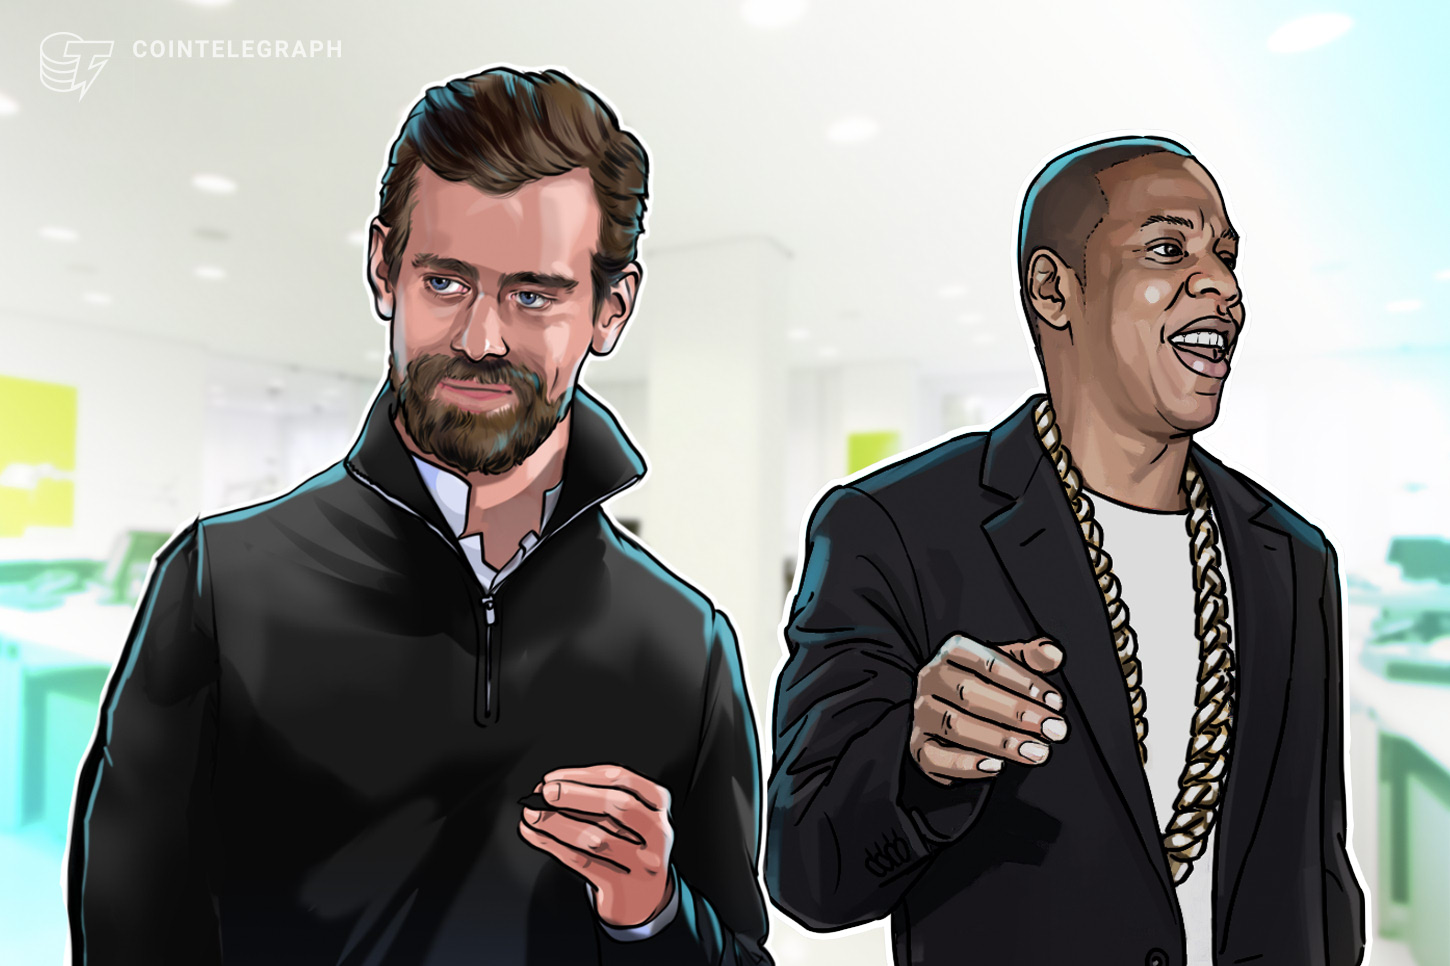 Jay-Z and Jack Dorsey-owned music streaming service could feature NFTs and smart contracts